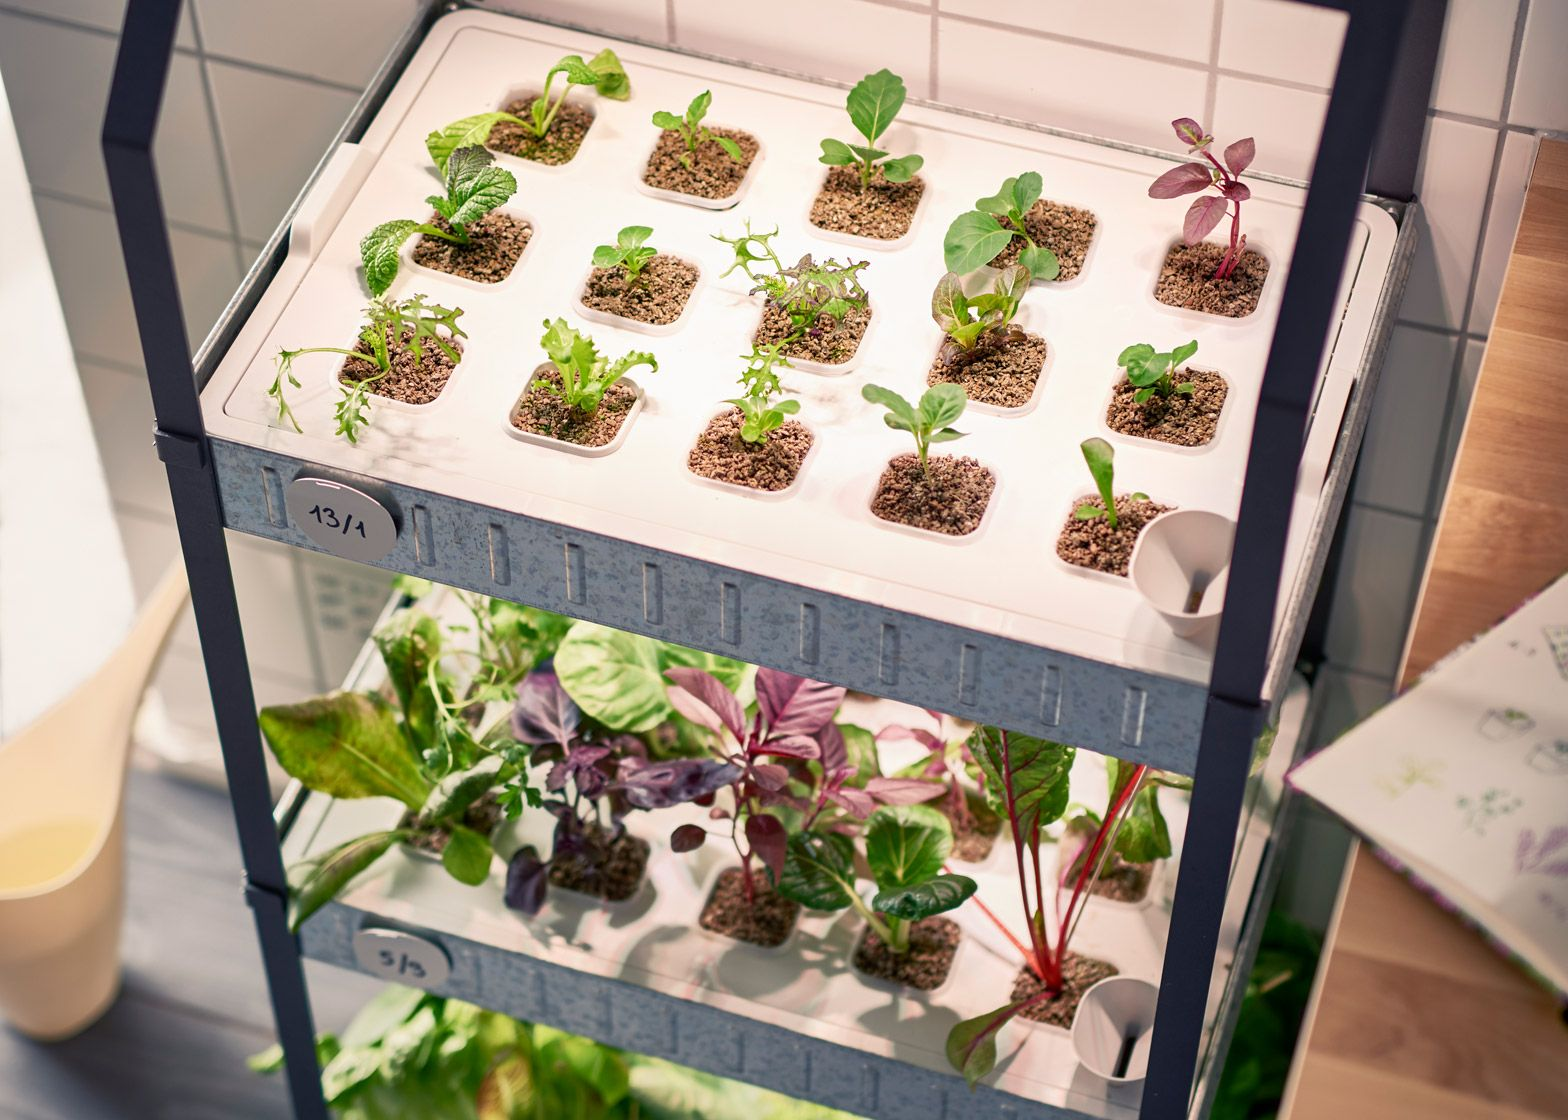 Ikea moves into indoor gardening with hydroponic kit indoor ikea moves into indoor gardening with hydroponic kit workwithnaturefo